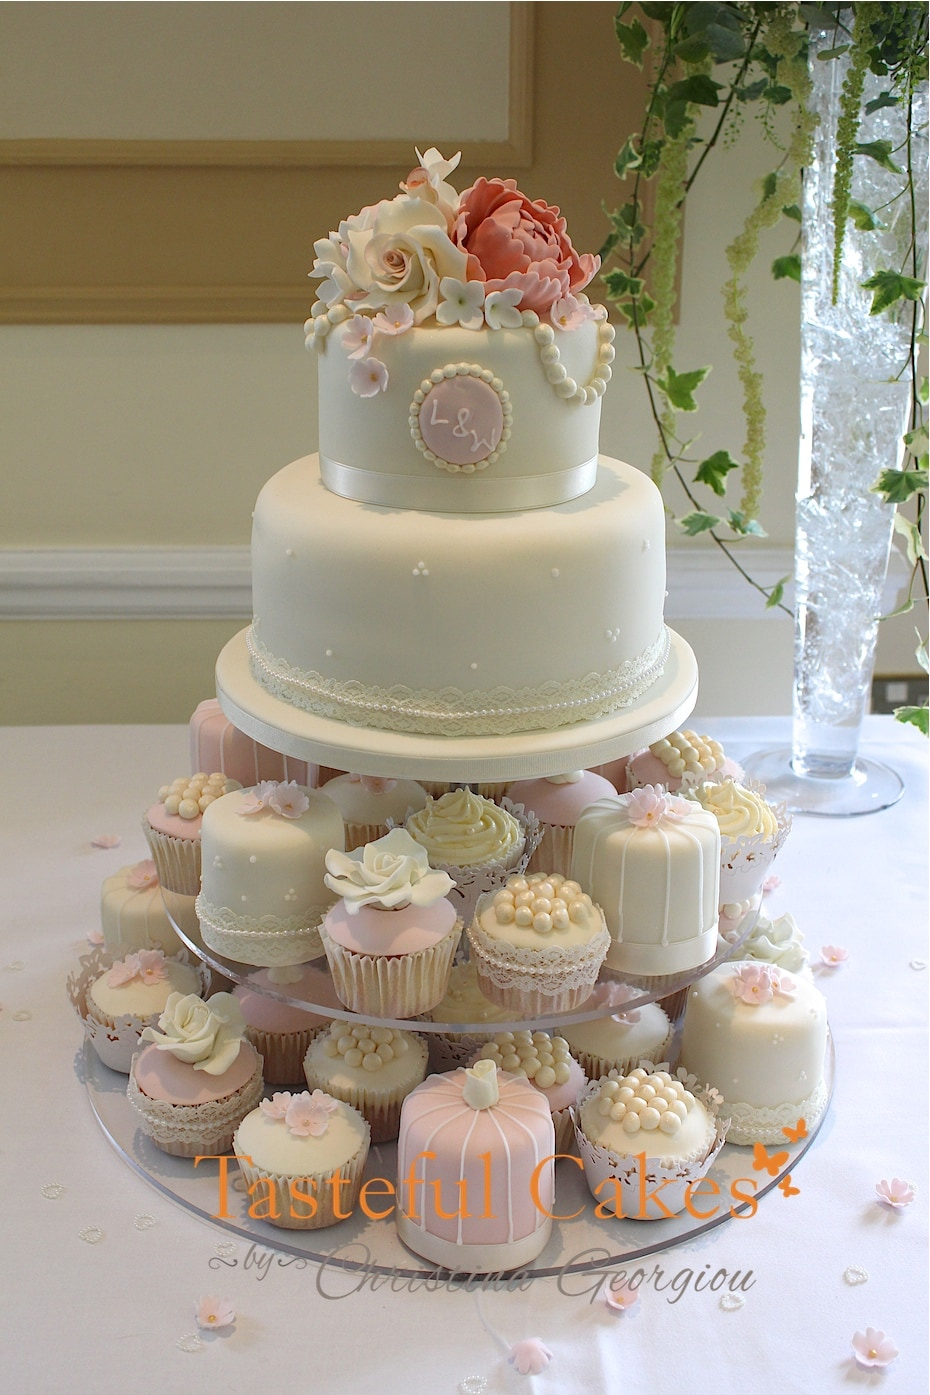 tasteful cakes by christina georgiou vintage style wedding cupcake tower. Black Bedroom Furniture Sets. Home Design Ideas